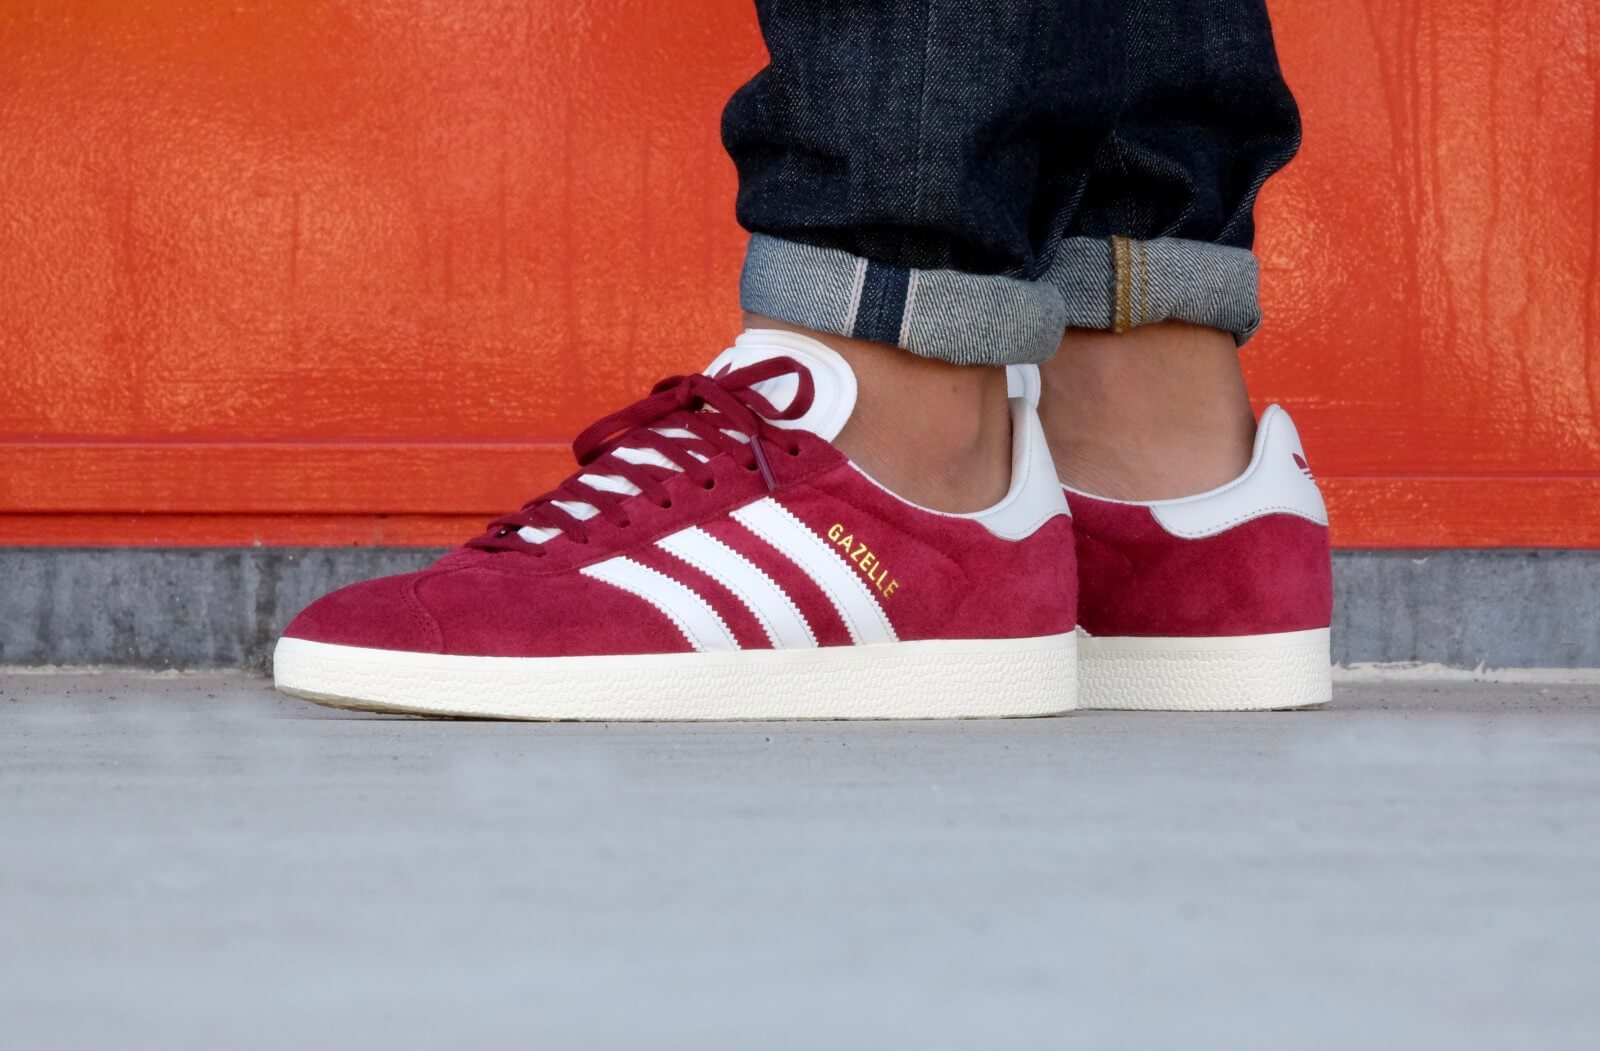 The adidas Gazelle Gets Covered In Collegiate Burgundy